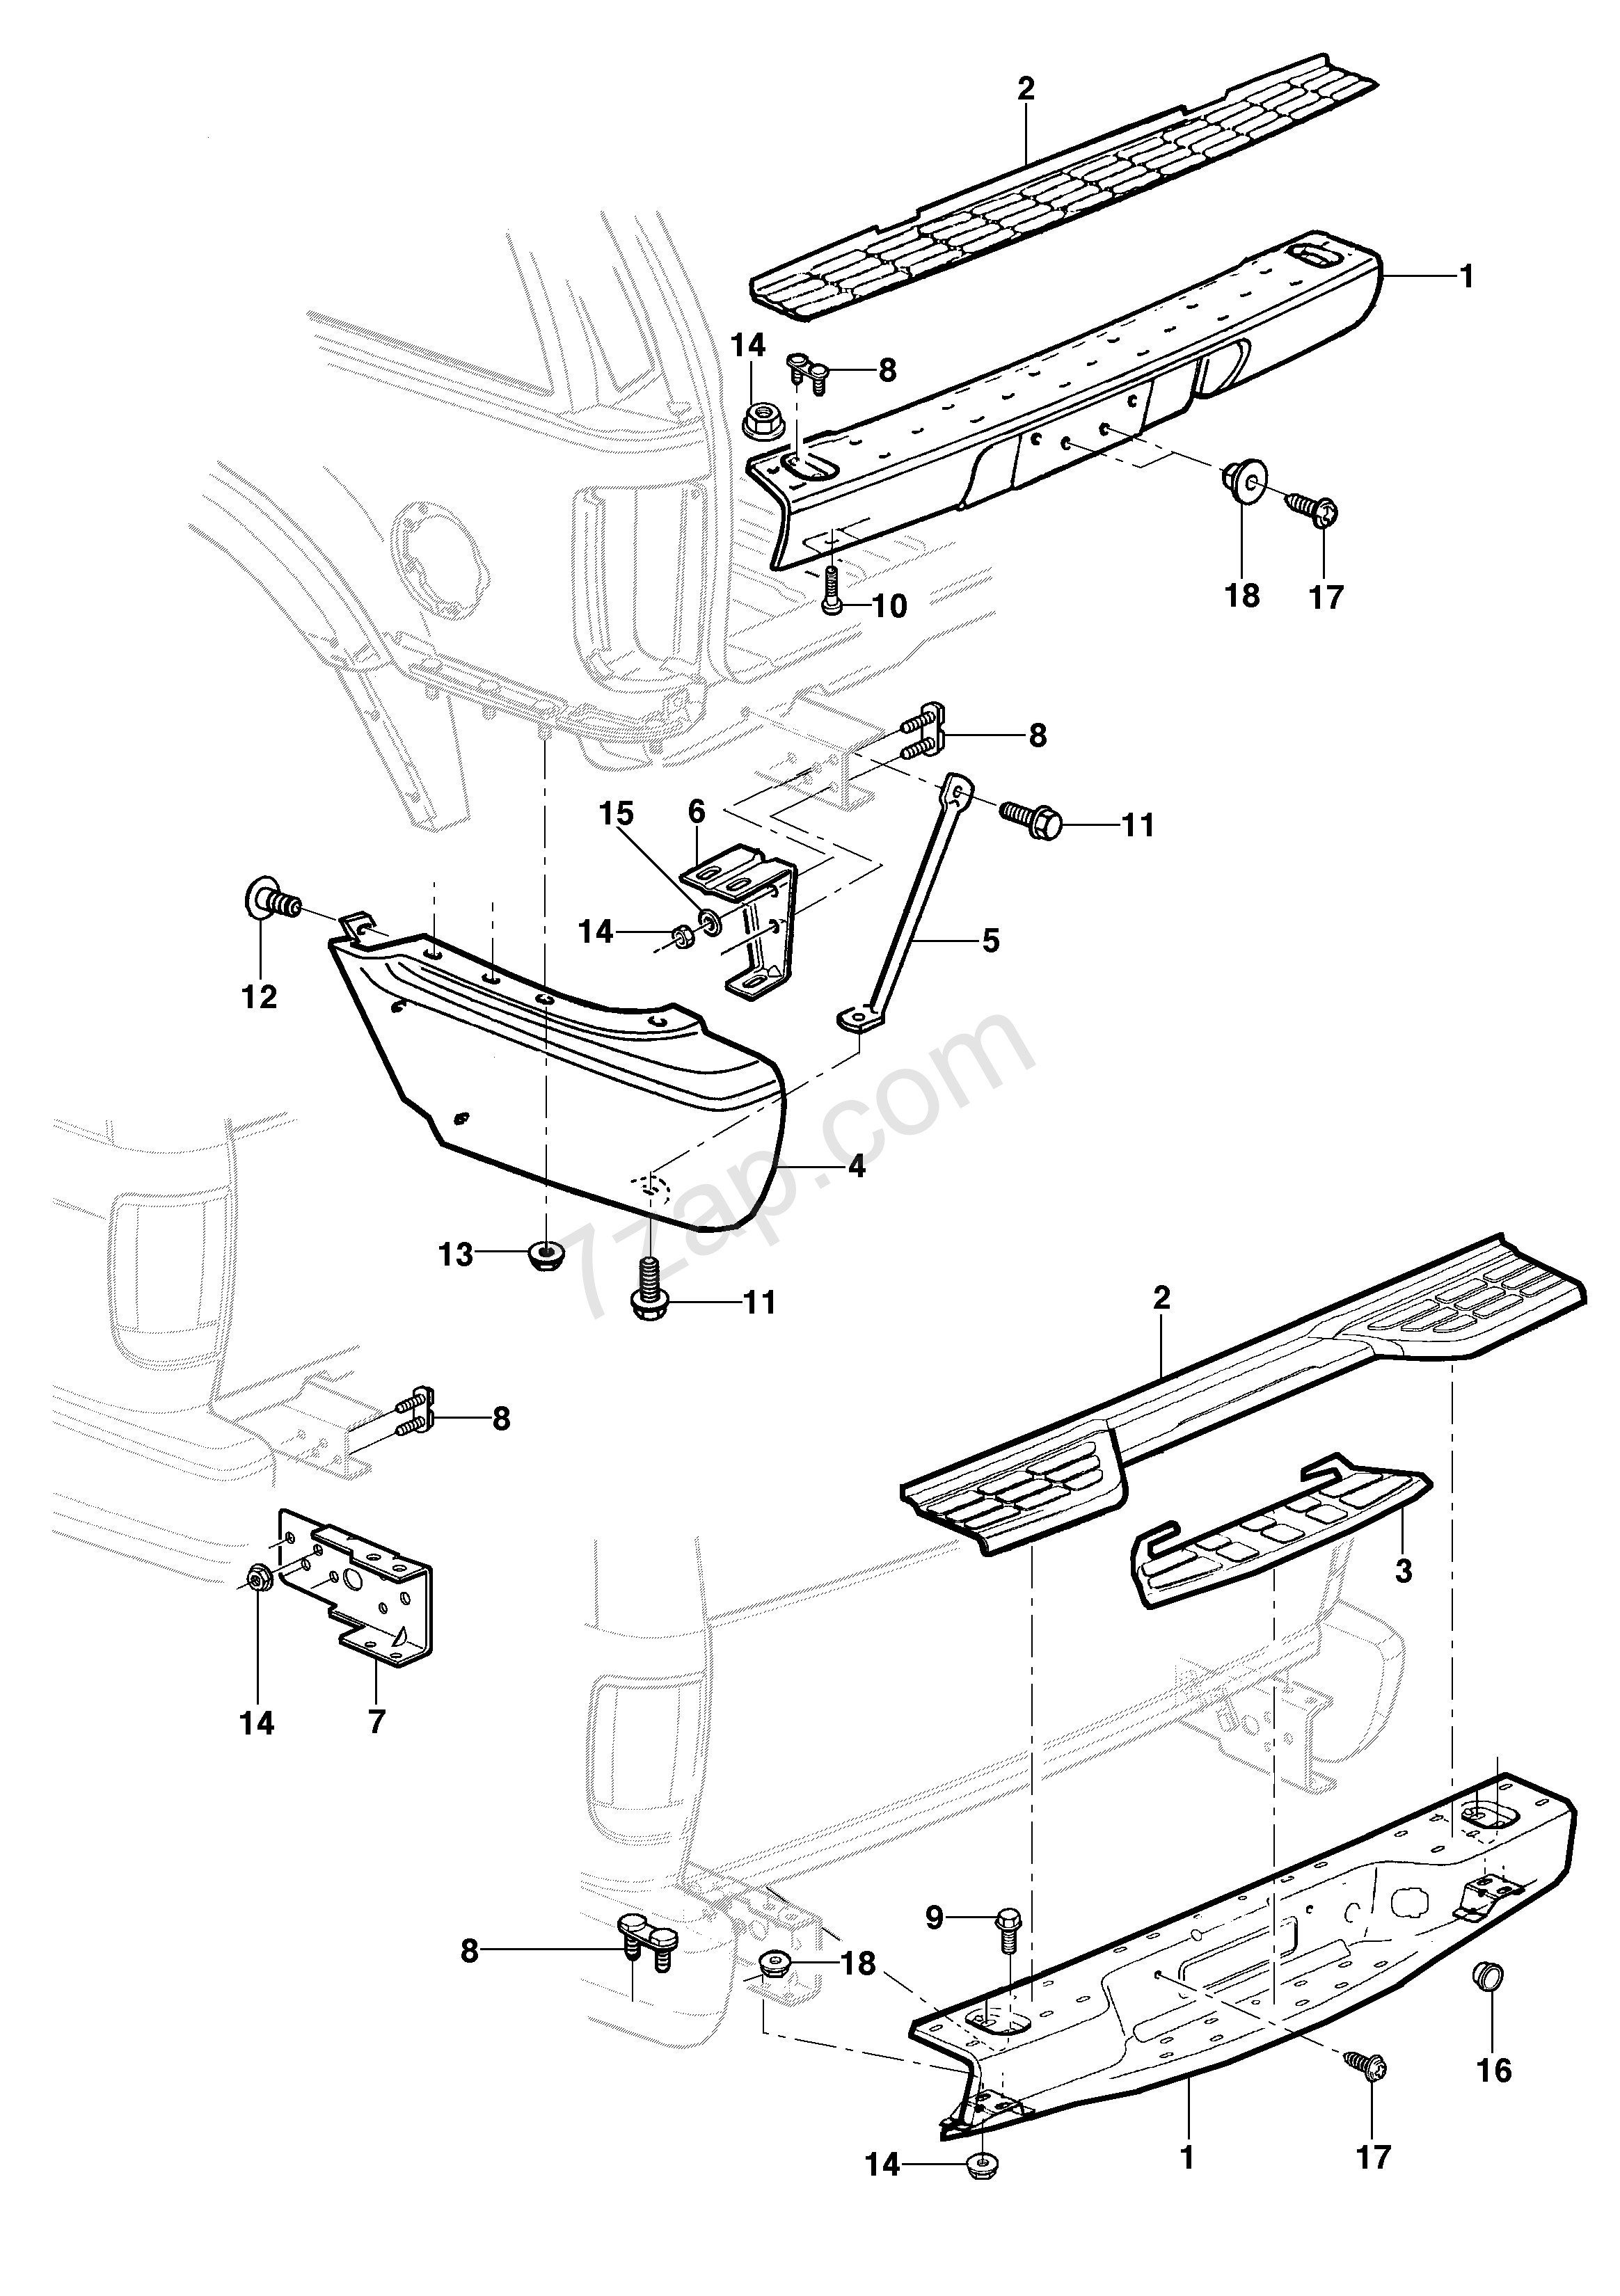 2008 chevy avalanche tailgate parts diagram  u2022 wiring